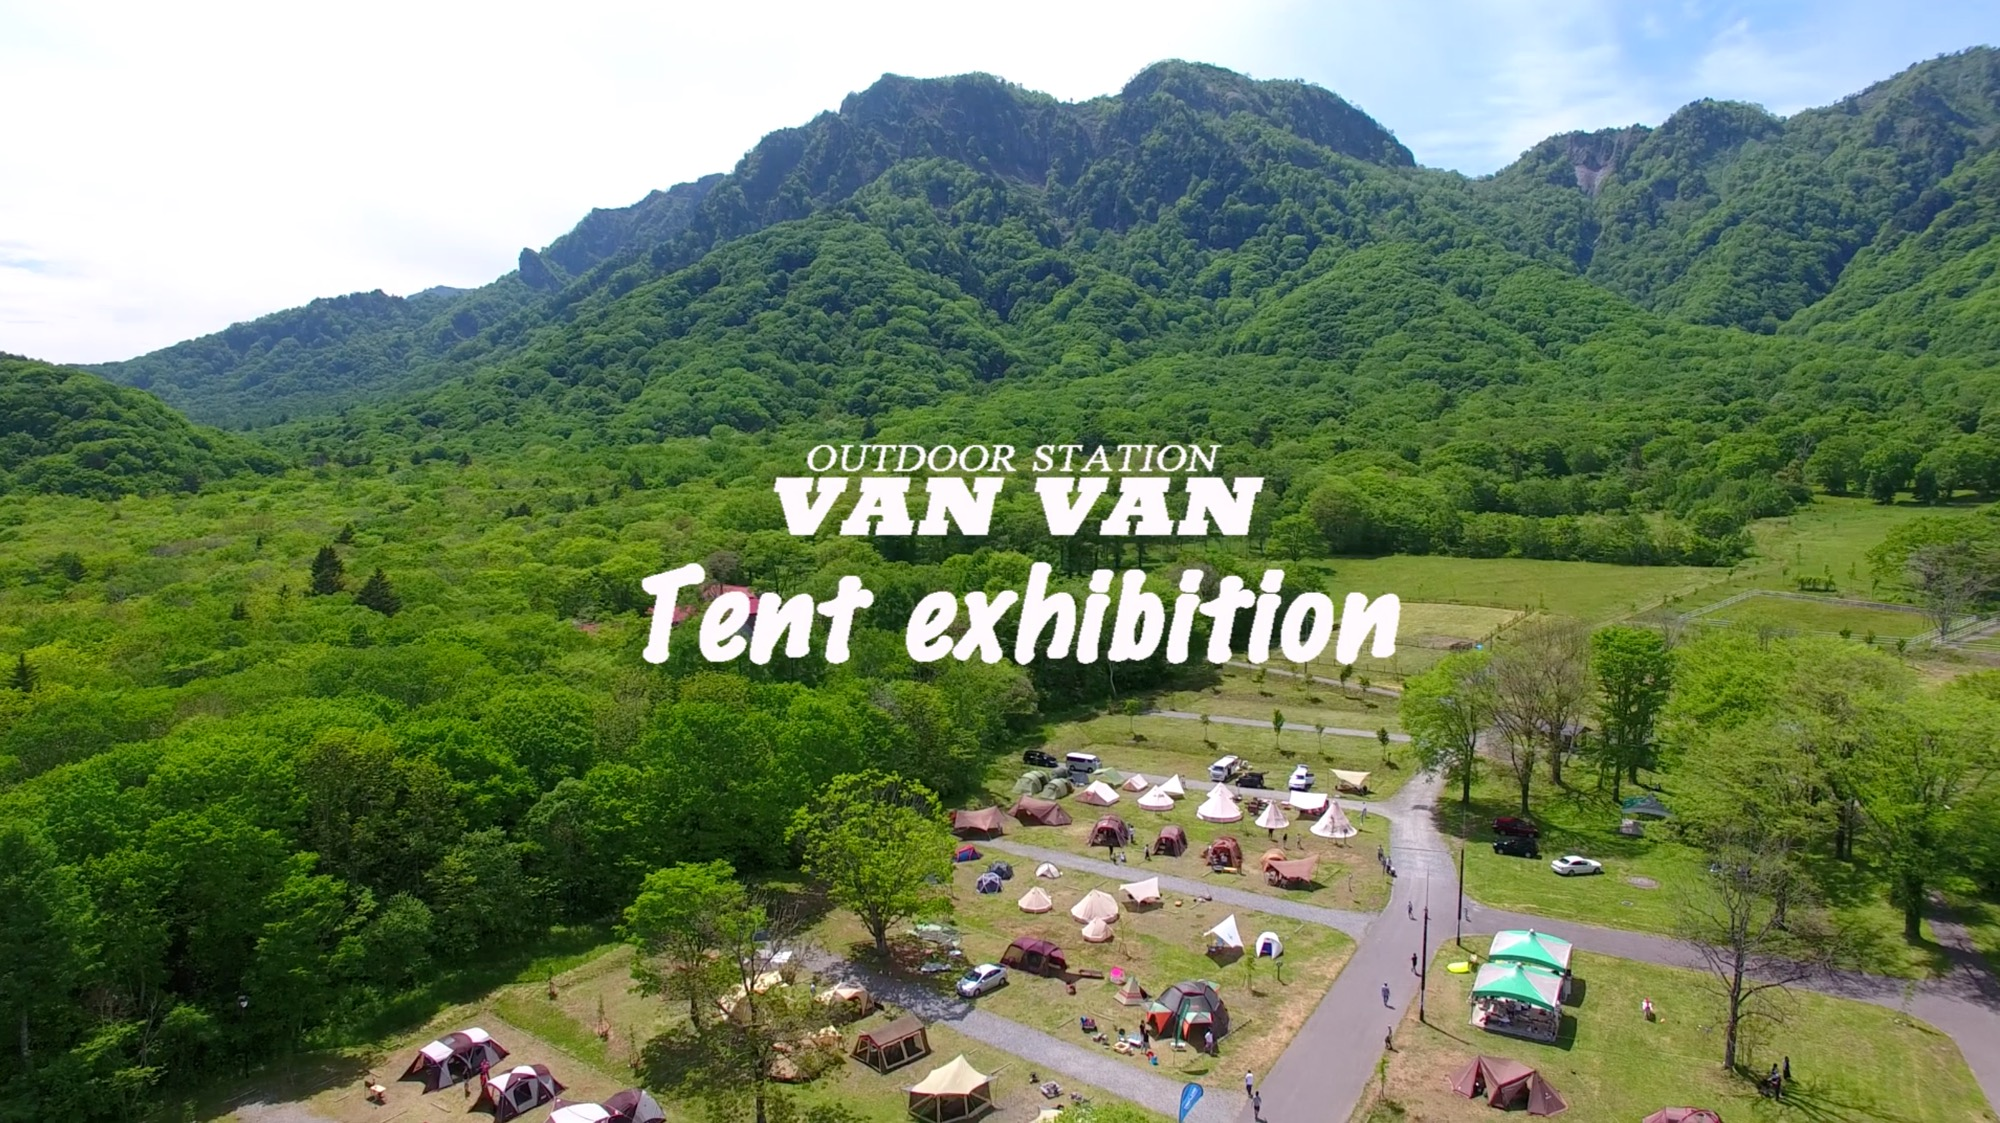 goat-tent-exhibition